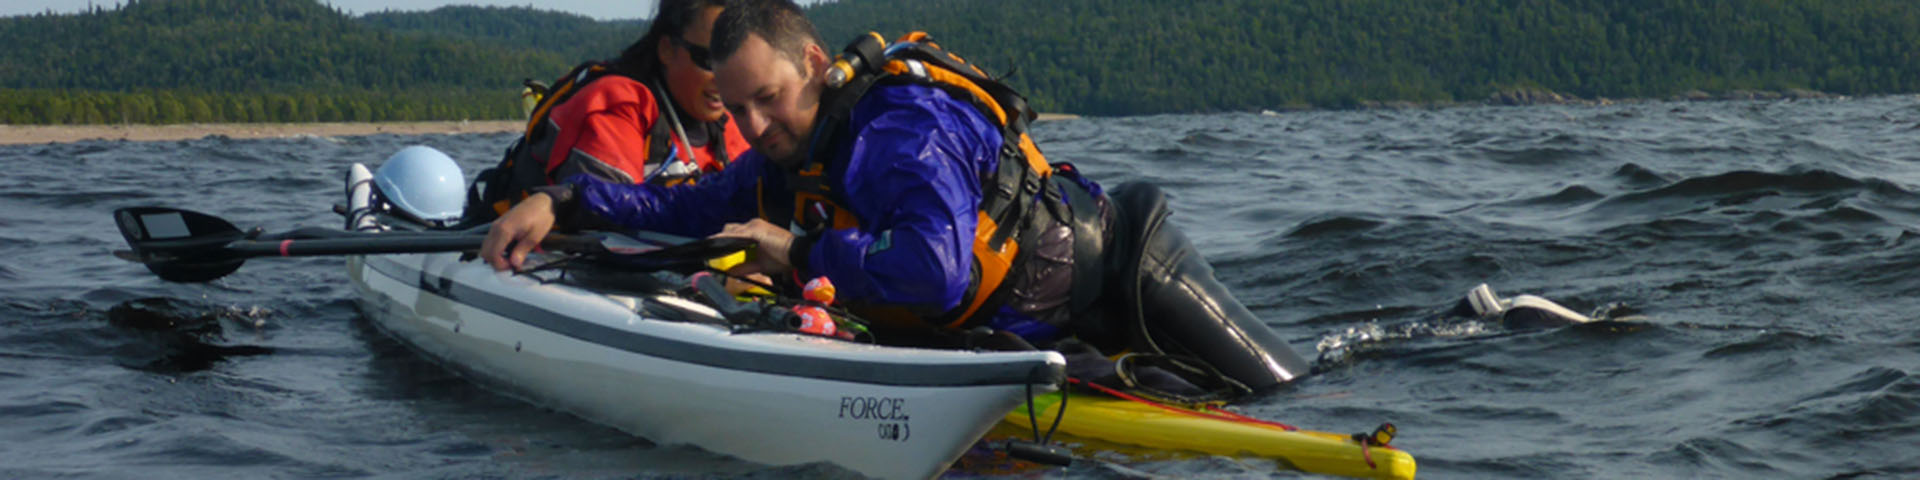 British Canoe Union 3-star & Paddle Canada Level 2 by Naturally Superior Adventures - Image 88